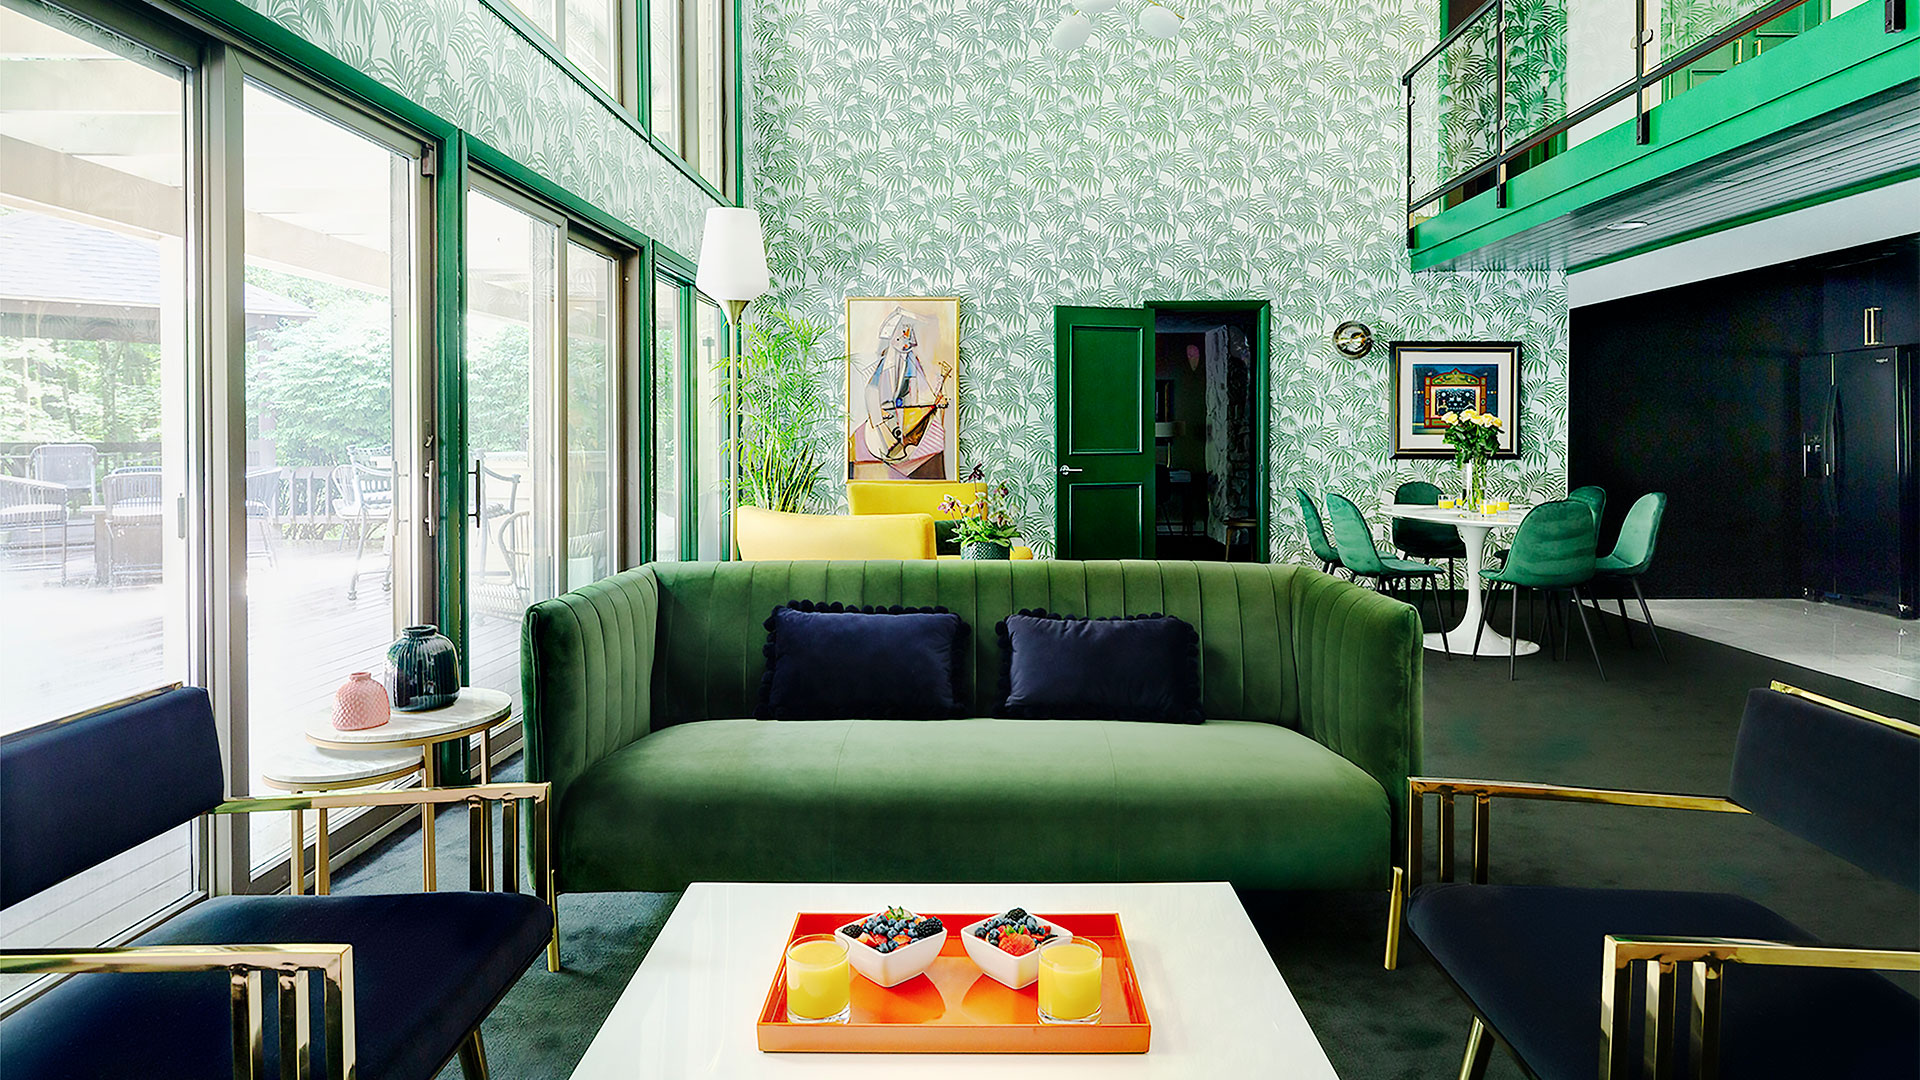 green room with green couch, green walls, and green door